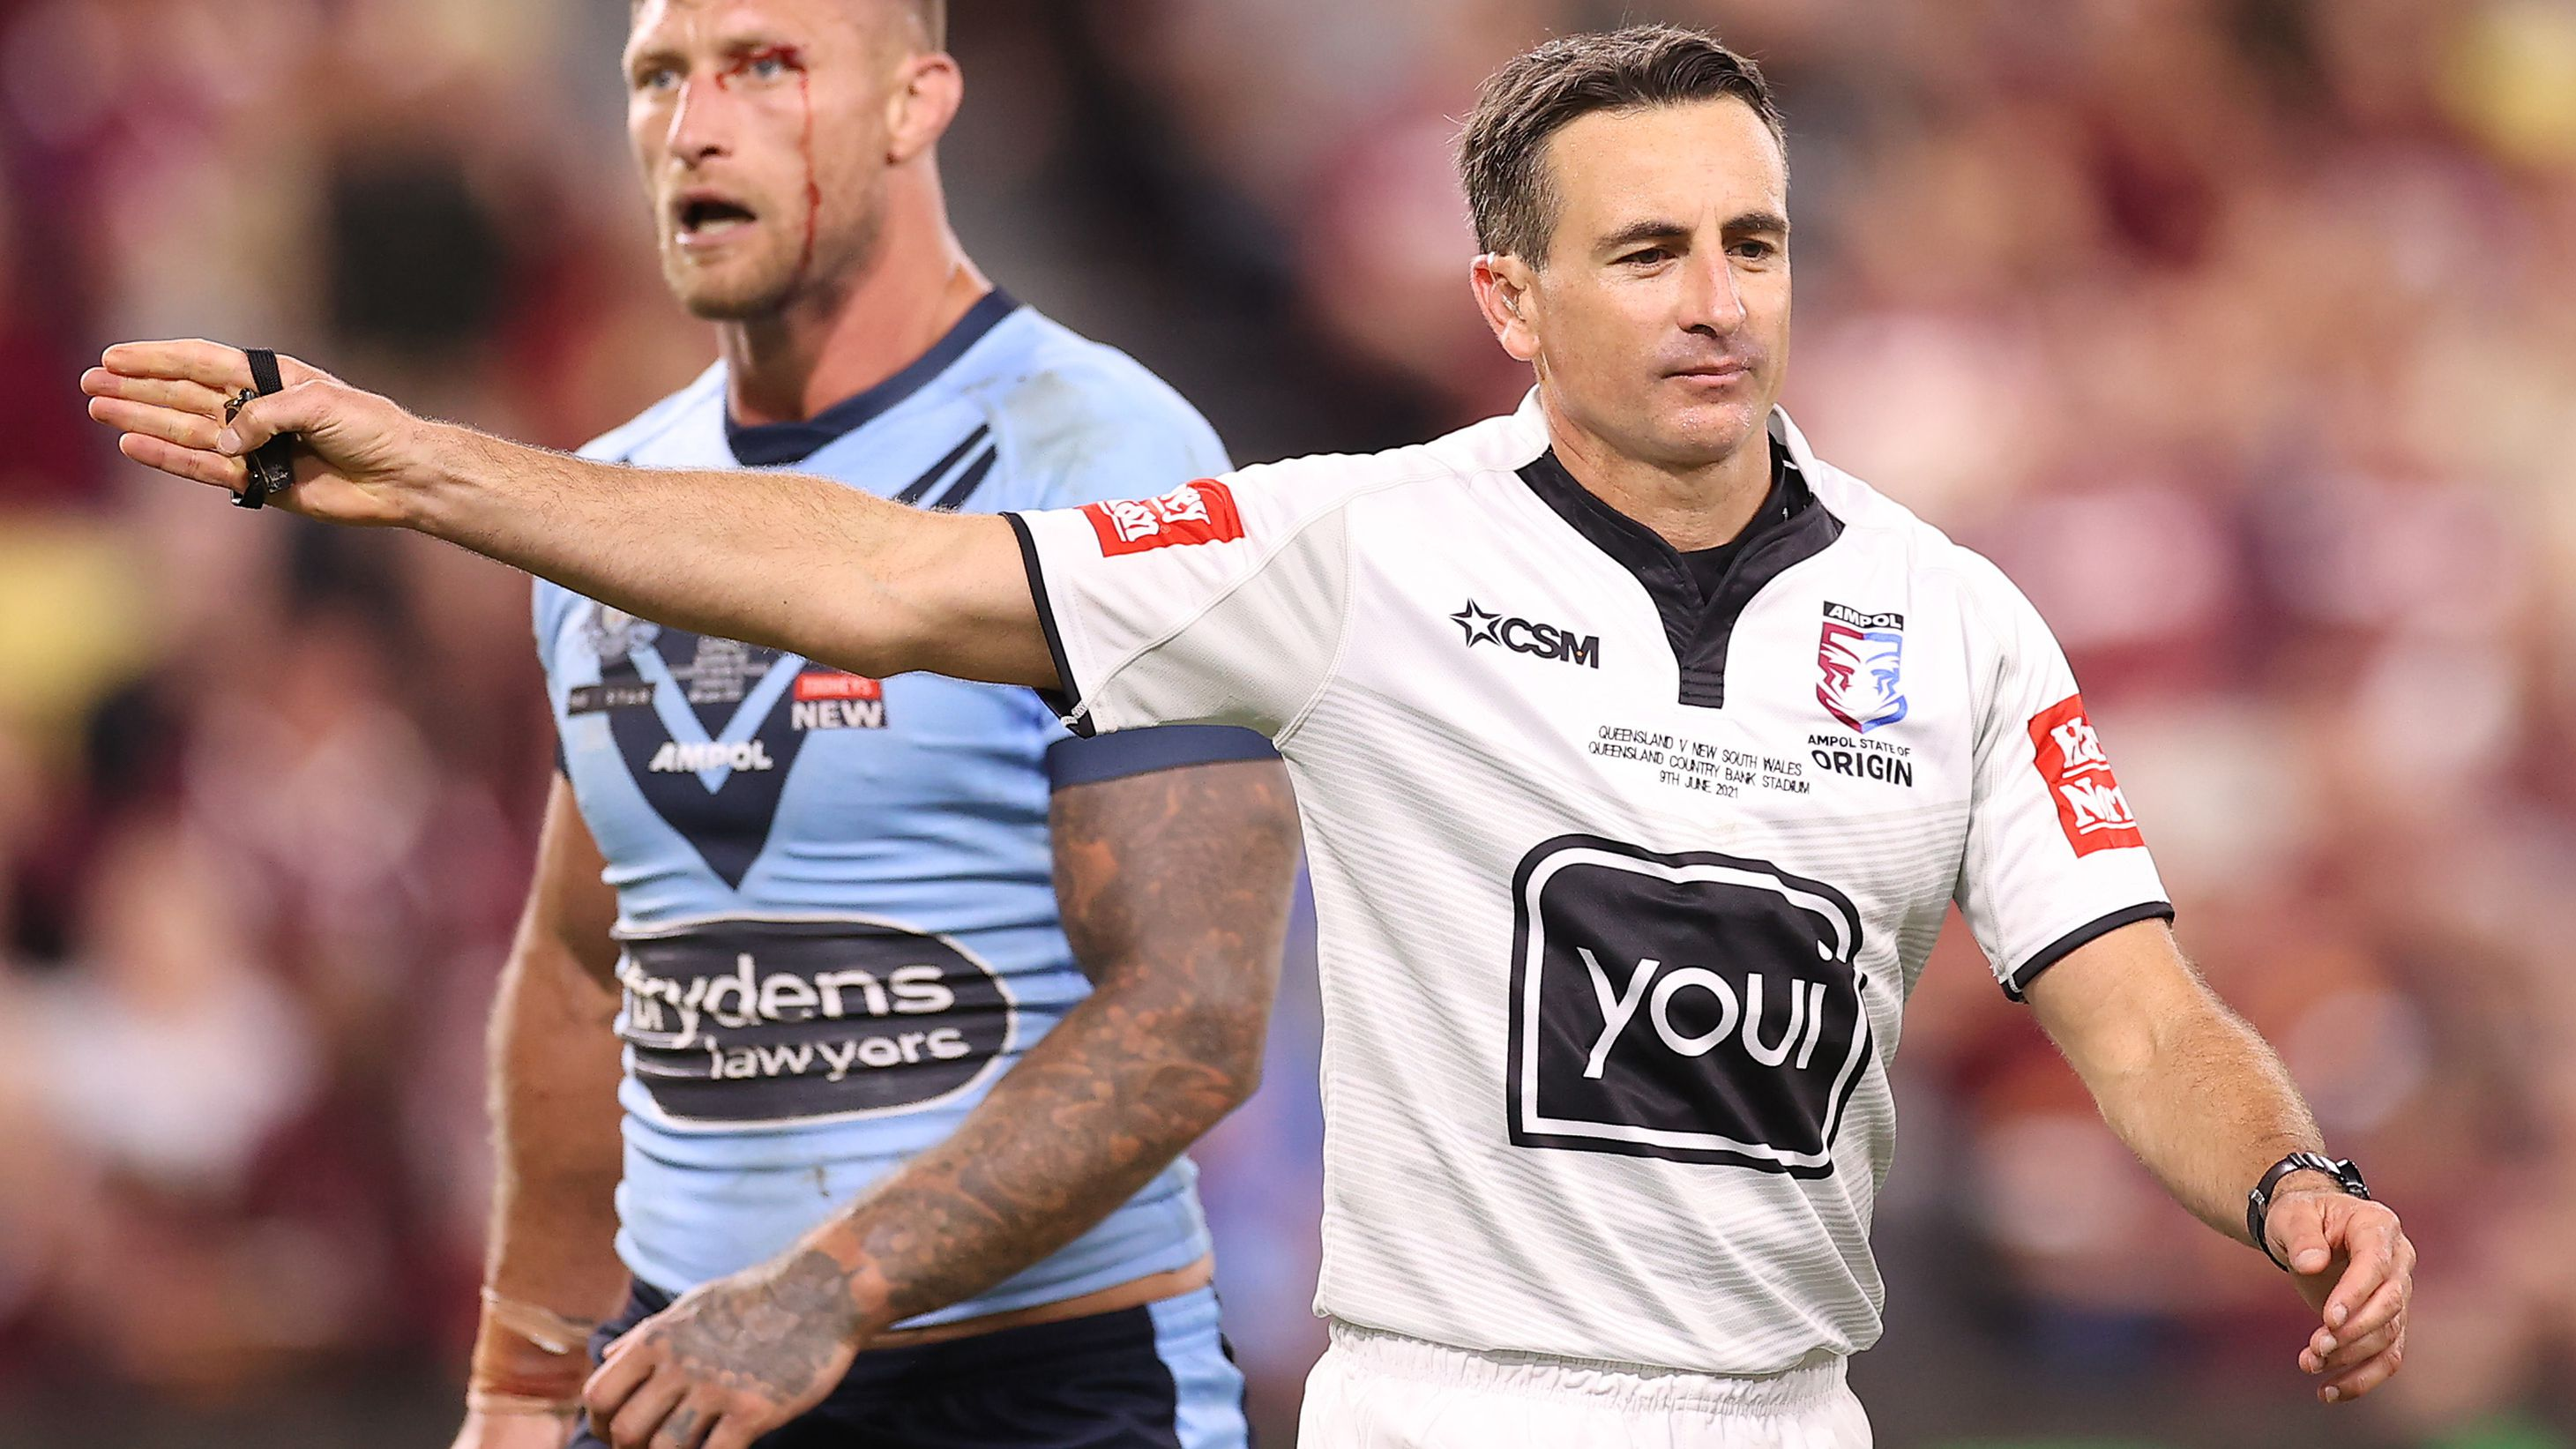 EXCLUSIVE: Wised-up teams are now blatantly exploiting six-again, Paul Gallen says